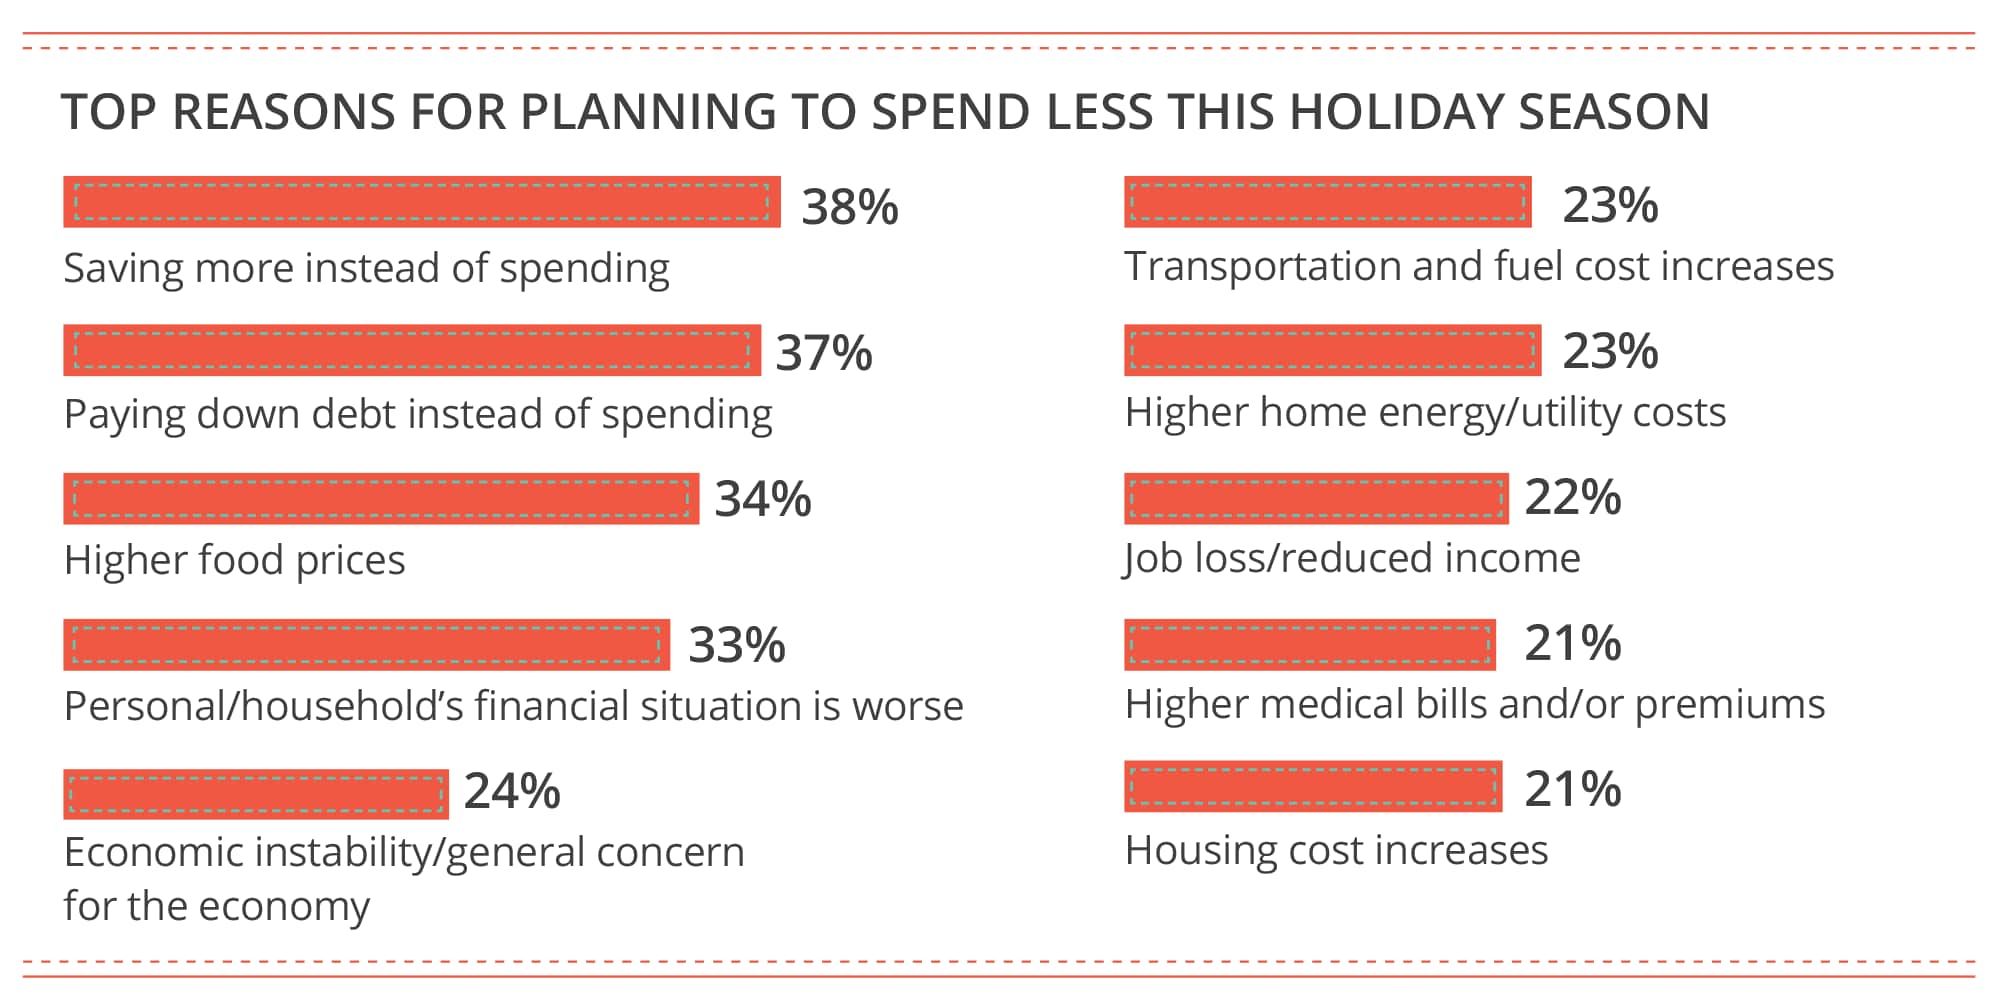 Top reasons for planning to spend less this holiday season